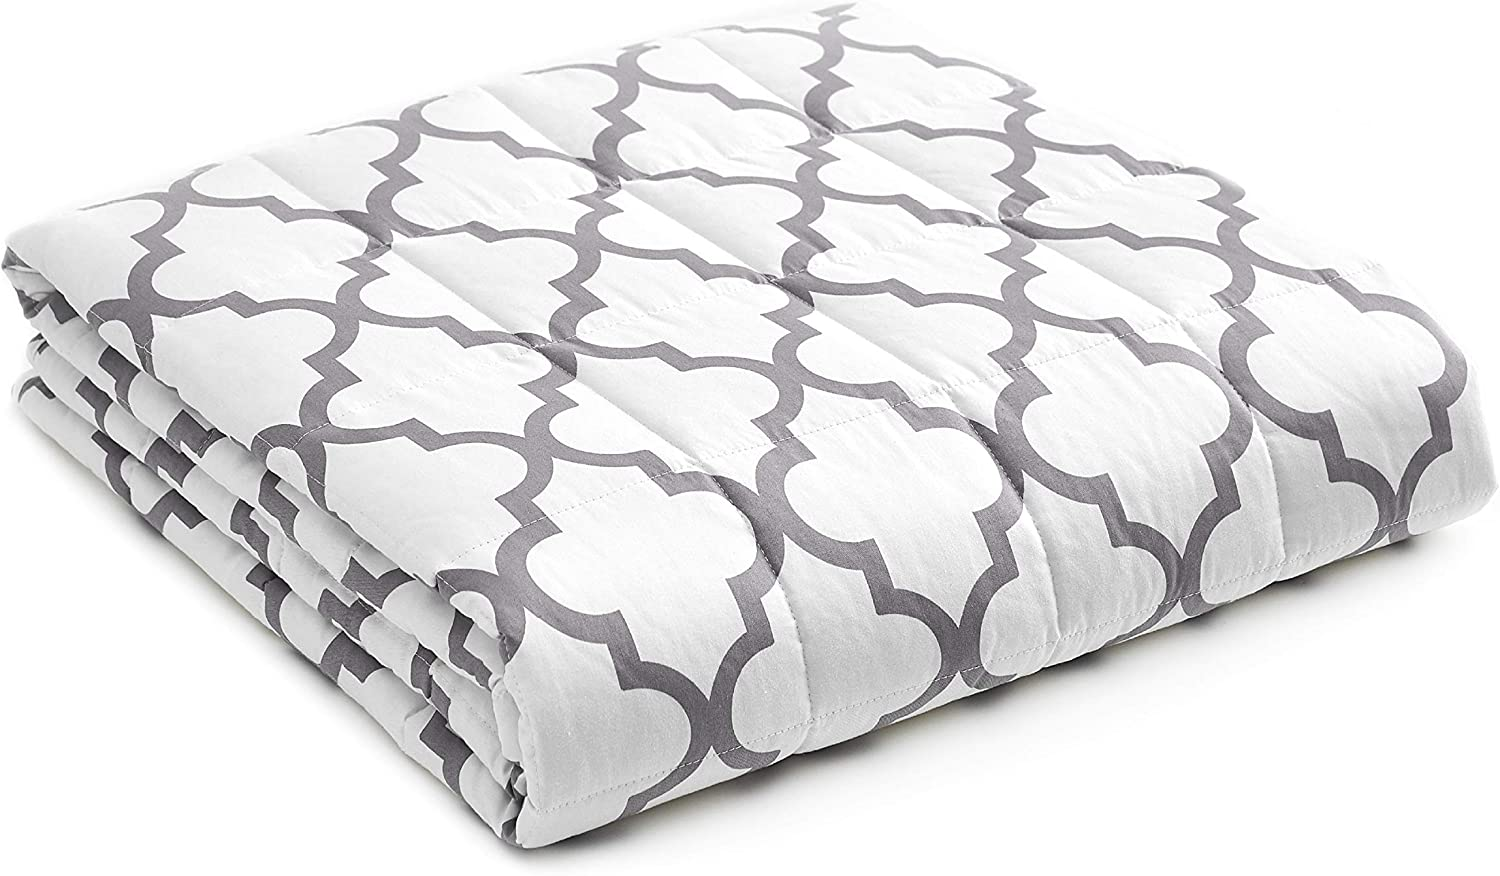 YnM Weighted Blanket — Heavy 100% Oeko-Tex Certified Cotton Material with Premium Glass Beads (Lattice Scroll, 80''x87'' 25lbs), Two Persons(110~190lb) Sharing Use on Queen/King Bed | A Duvet Included